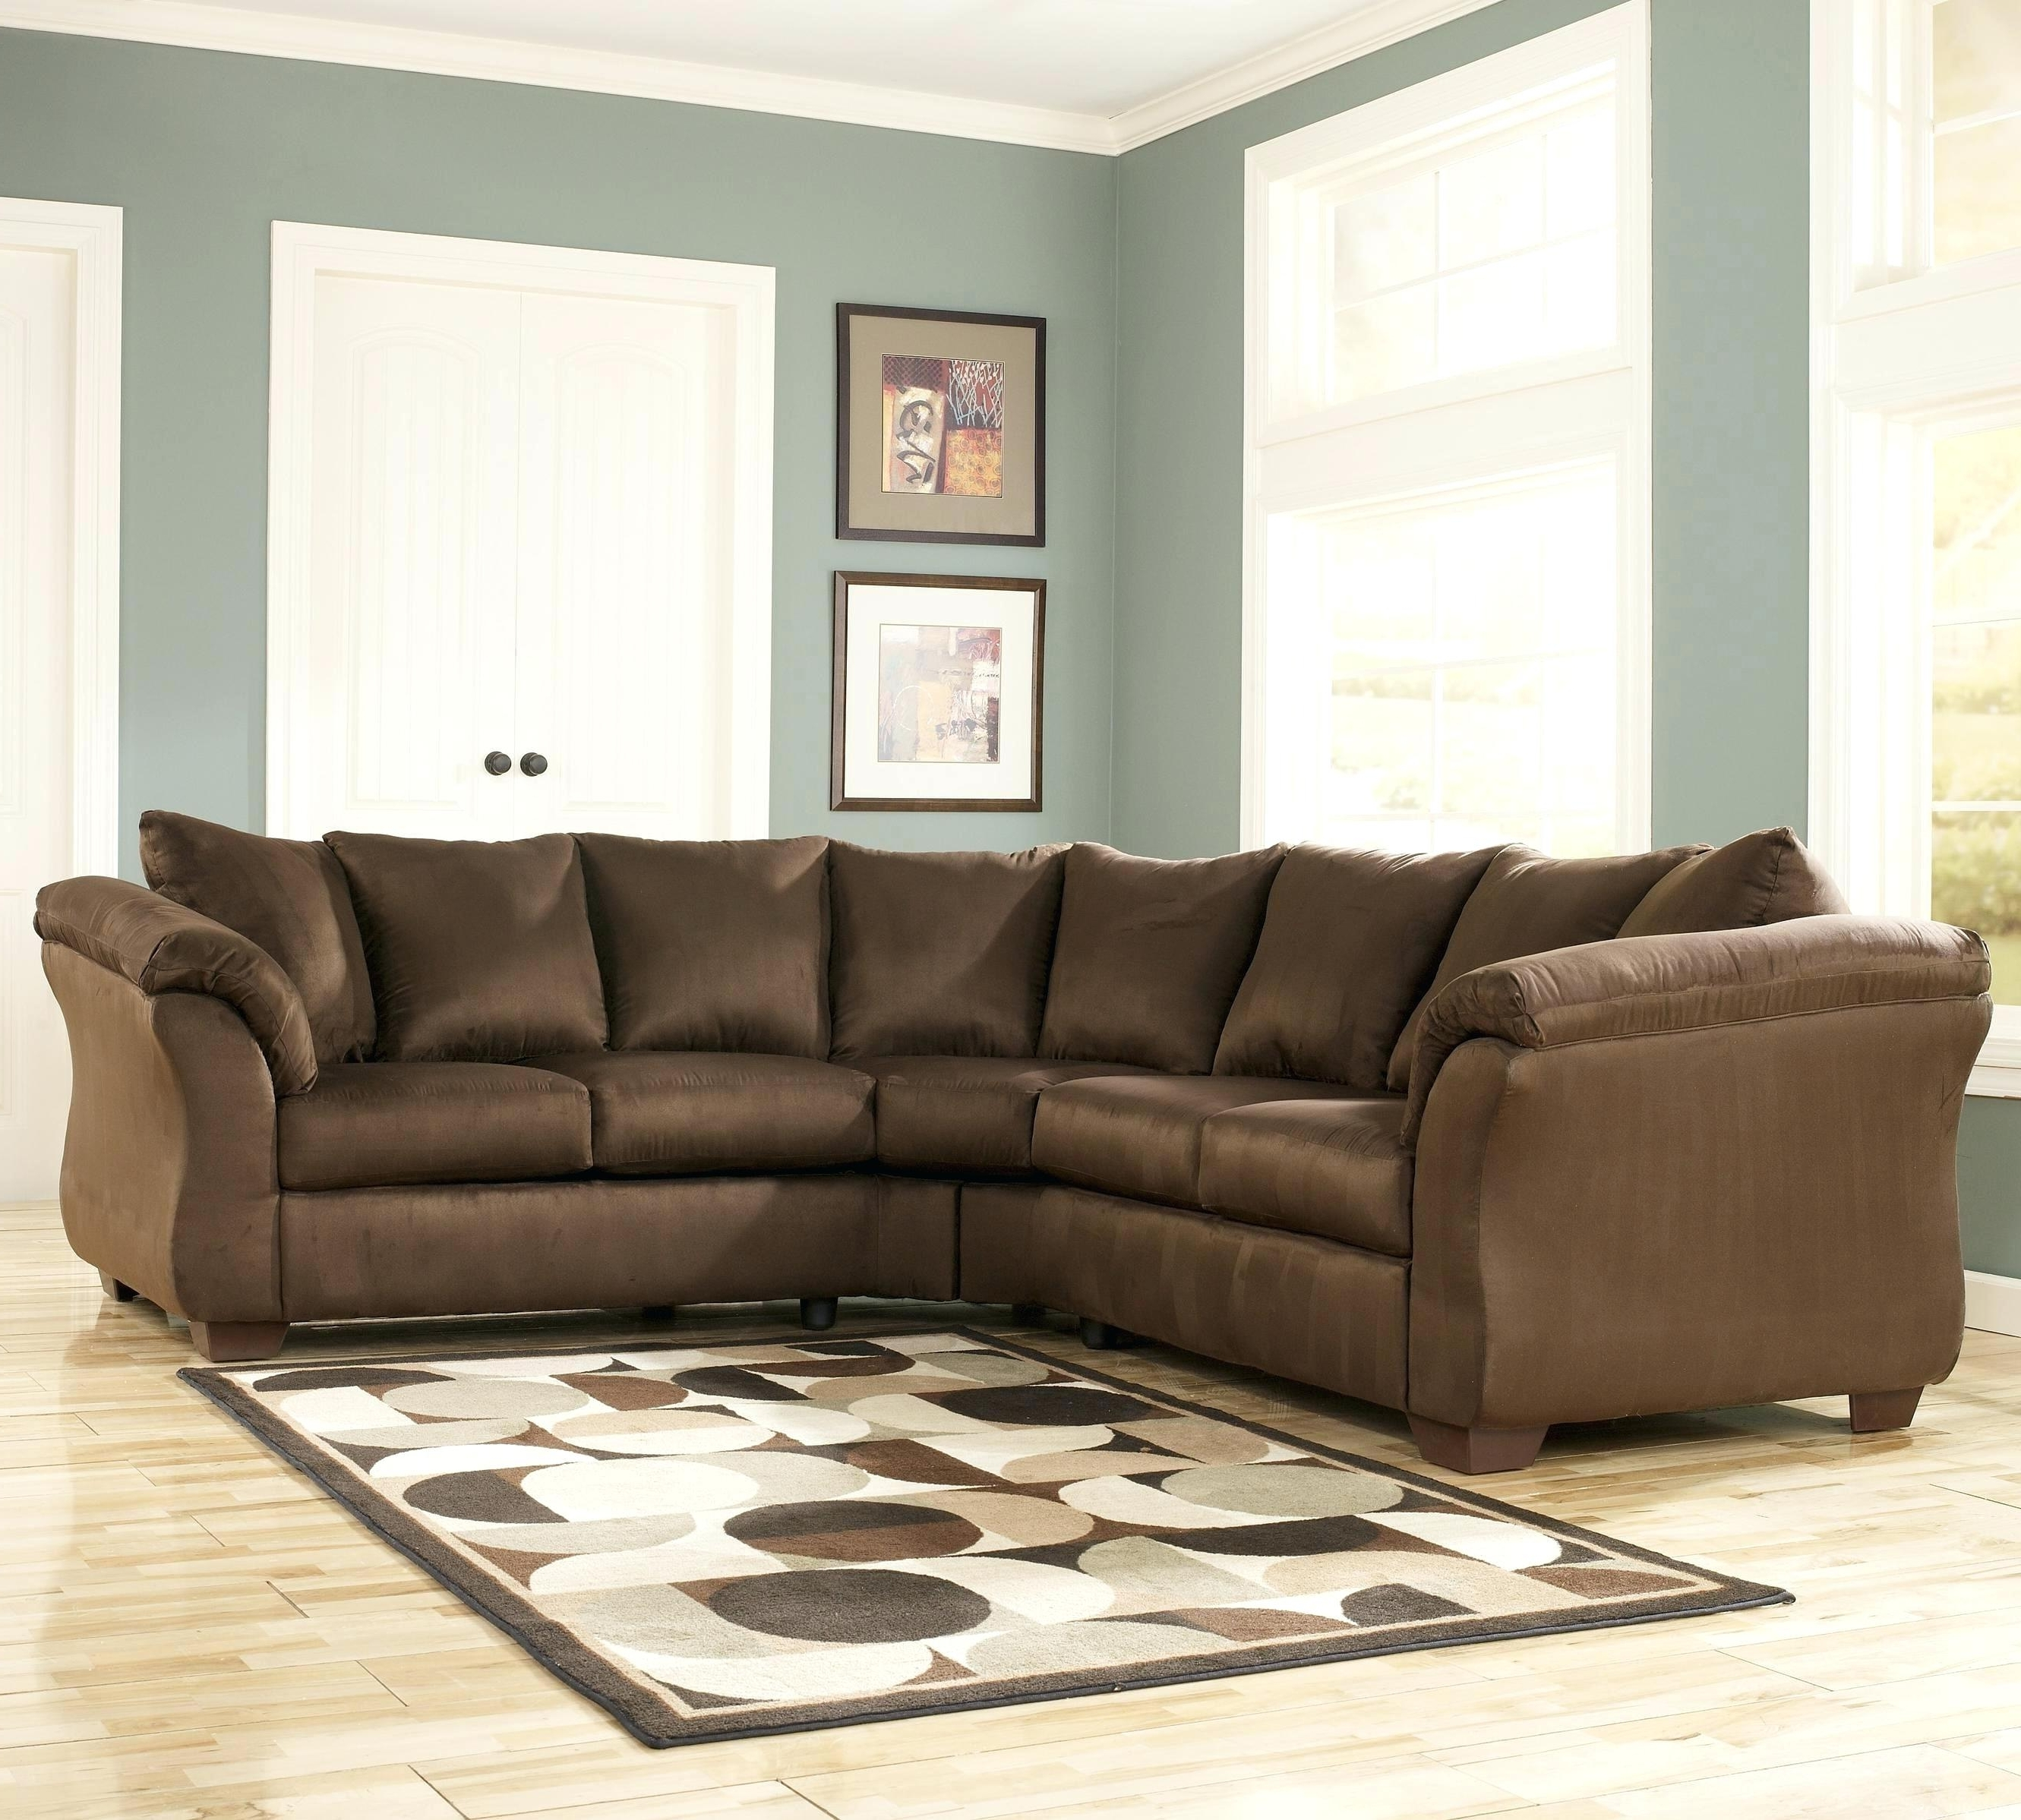 2018 Sofa : Macys Leather Sectional Sleeper Sofa Queen Sofa Sleeper Bed Throughout Macys Leather Sectional Sofas (View 3 of 20)